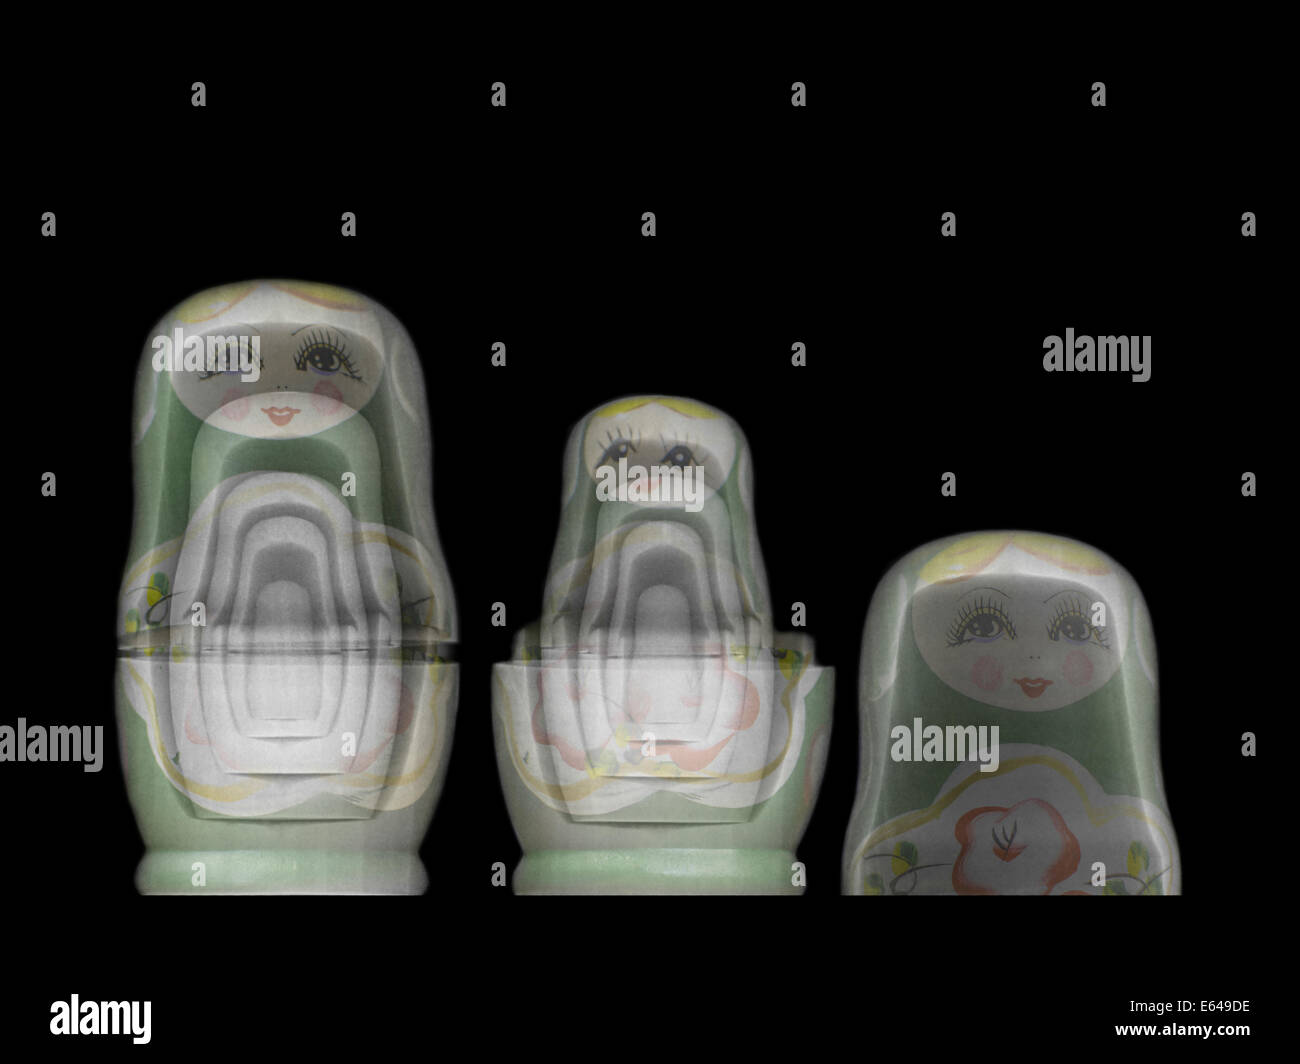 Russian Matryoshka doll under x-ray. The inner smaller dolls can be seen - Stock Image